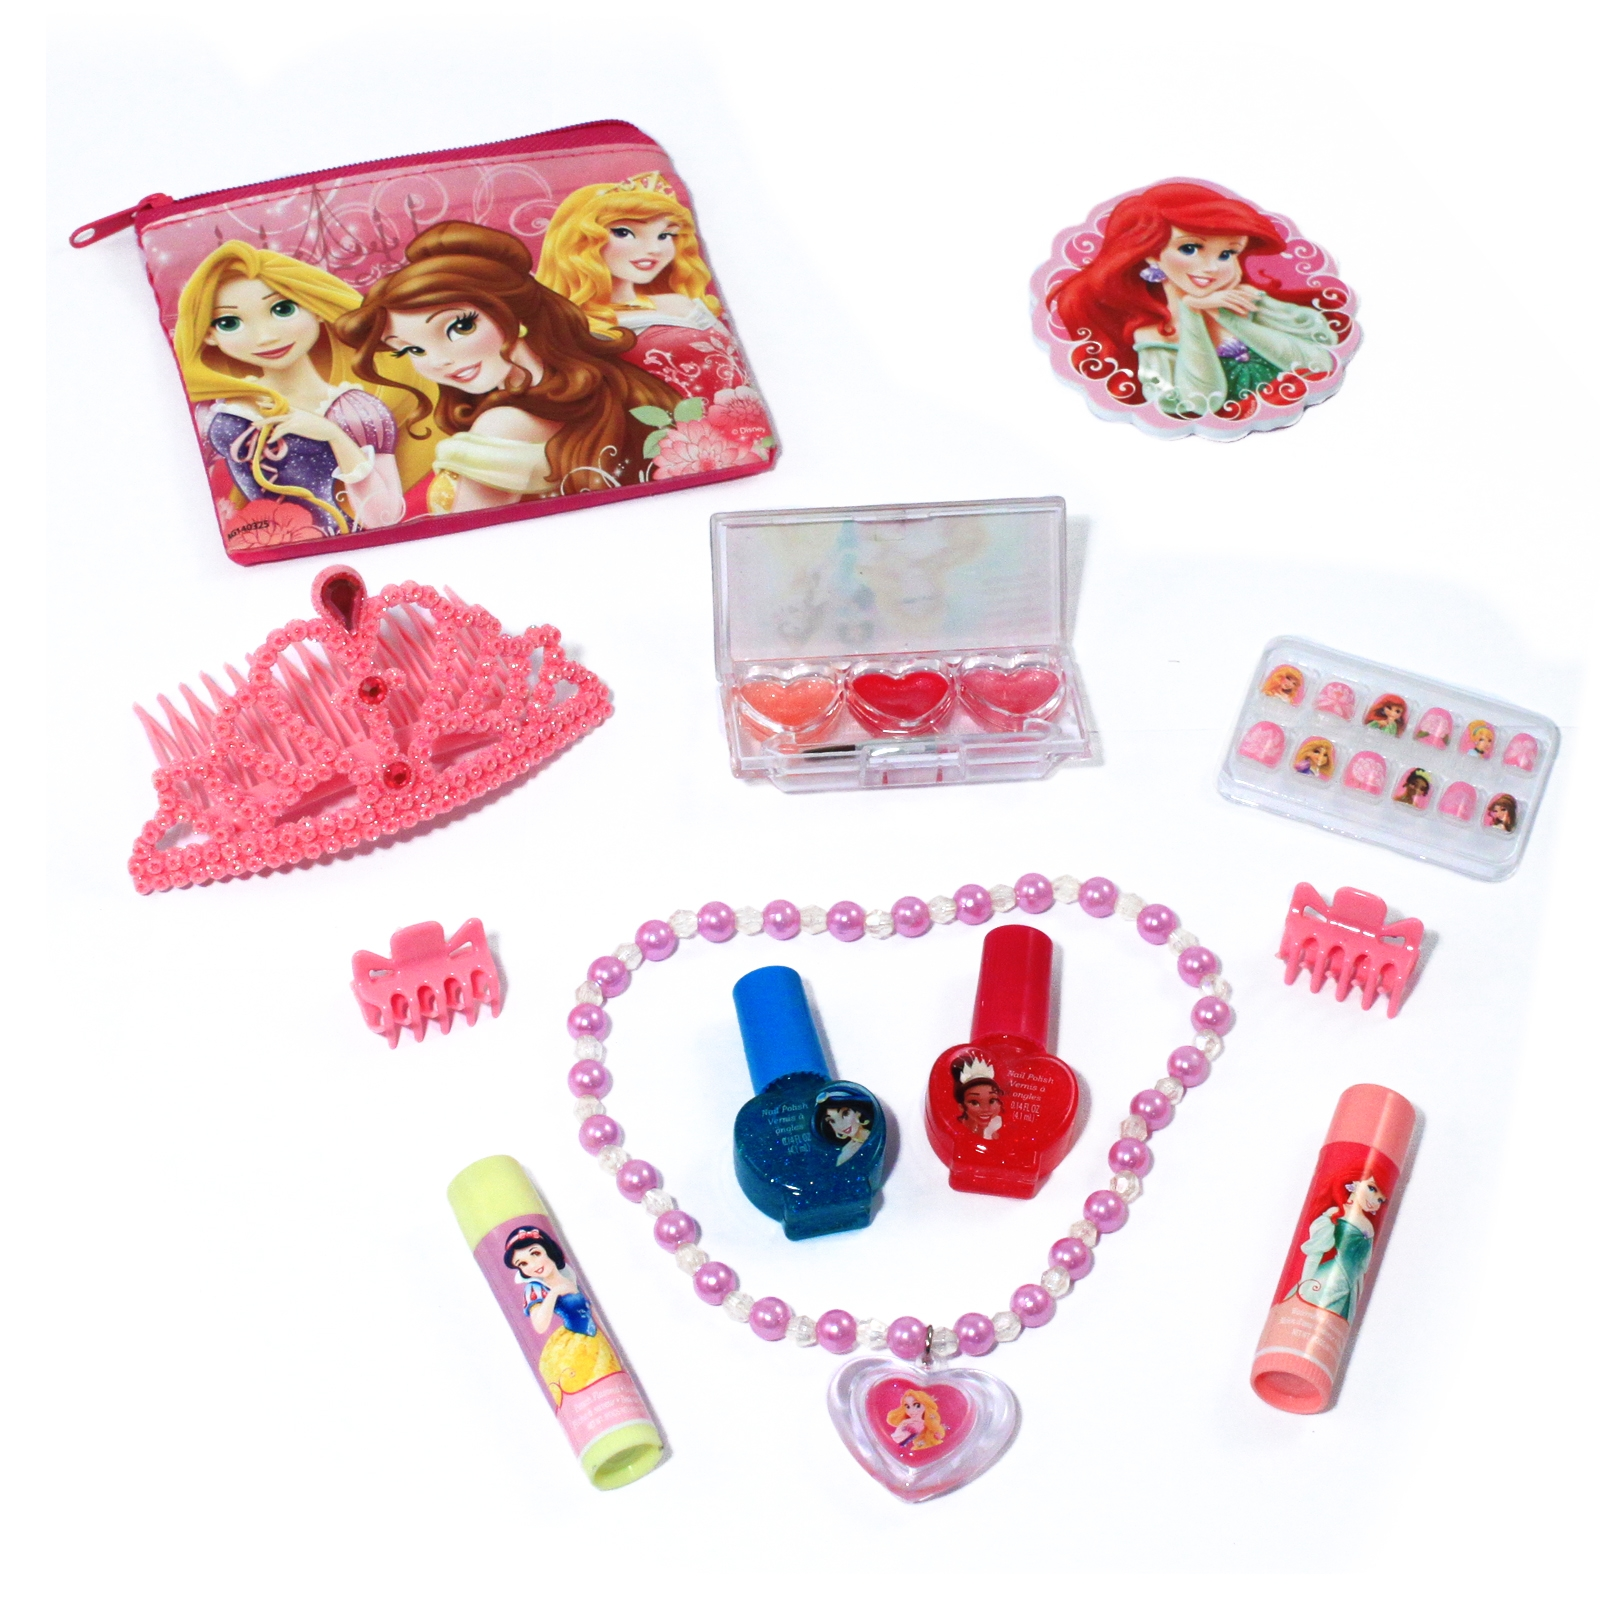 Disney Princess Girls Cosmetics Dress-up Accessories Set (12 Piece) at Sears.com